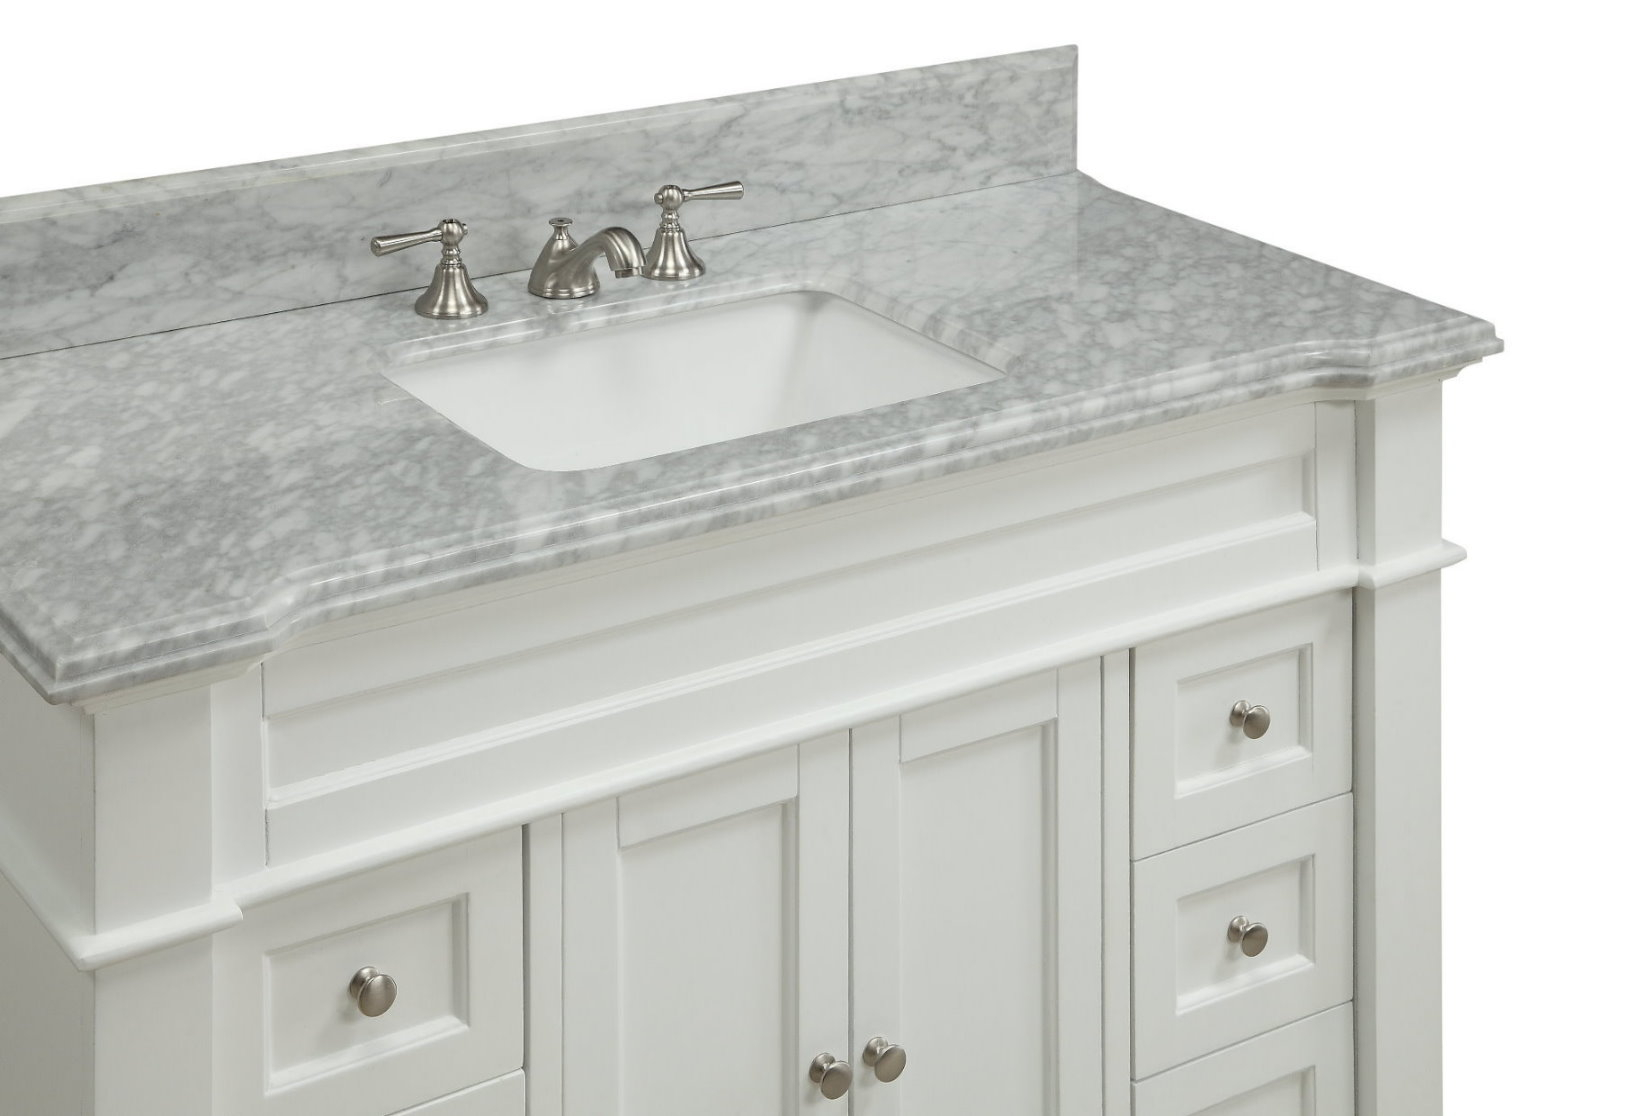 Fabulous Fascinating Vanities Without Tops 15 Wonderful Bath 25 Luxury 60 in Set Bathroom Vanity With Top